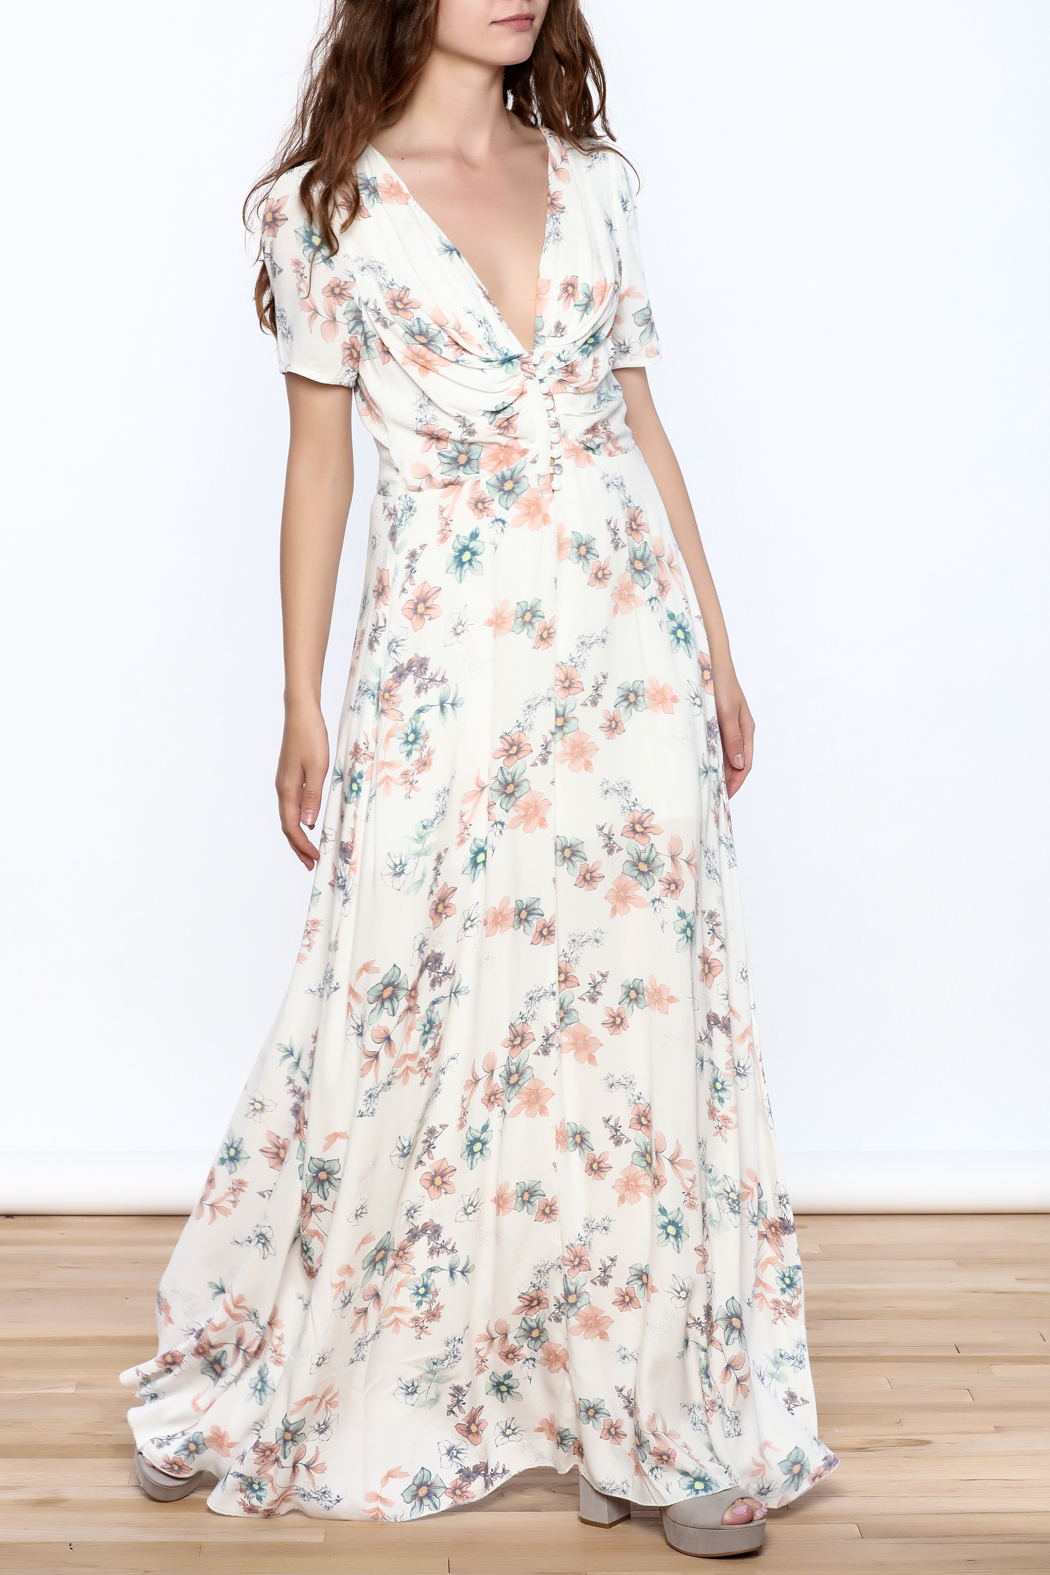 y&i clothing boutique Cream Floral Maxi Dress - Front Full Image